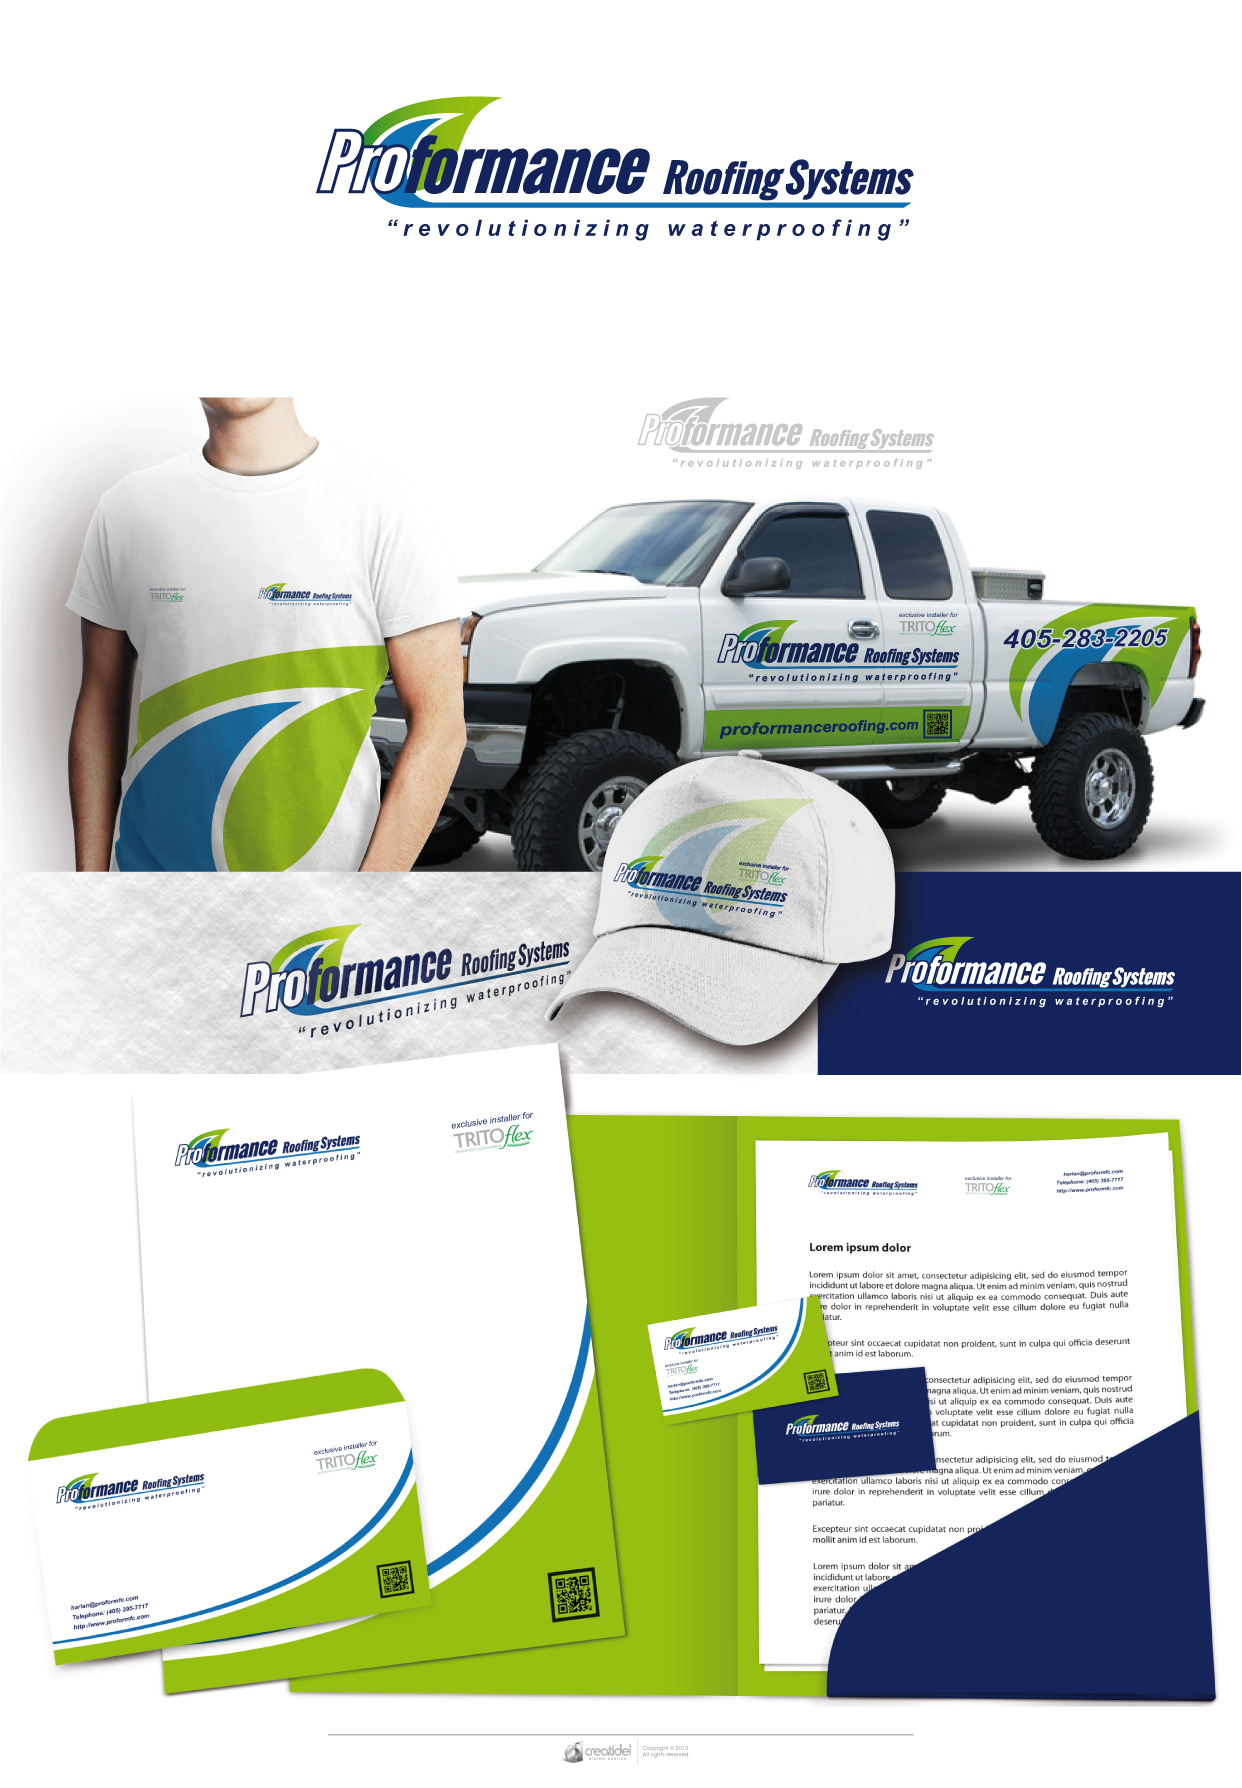 Proformance Roofing Systems needs a new logo